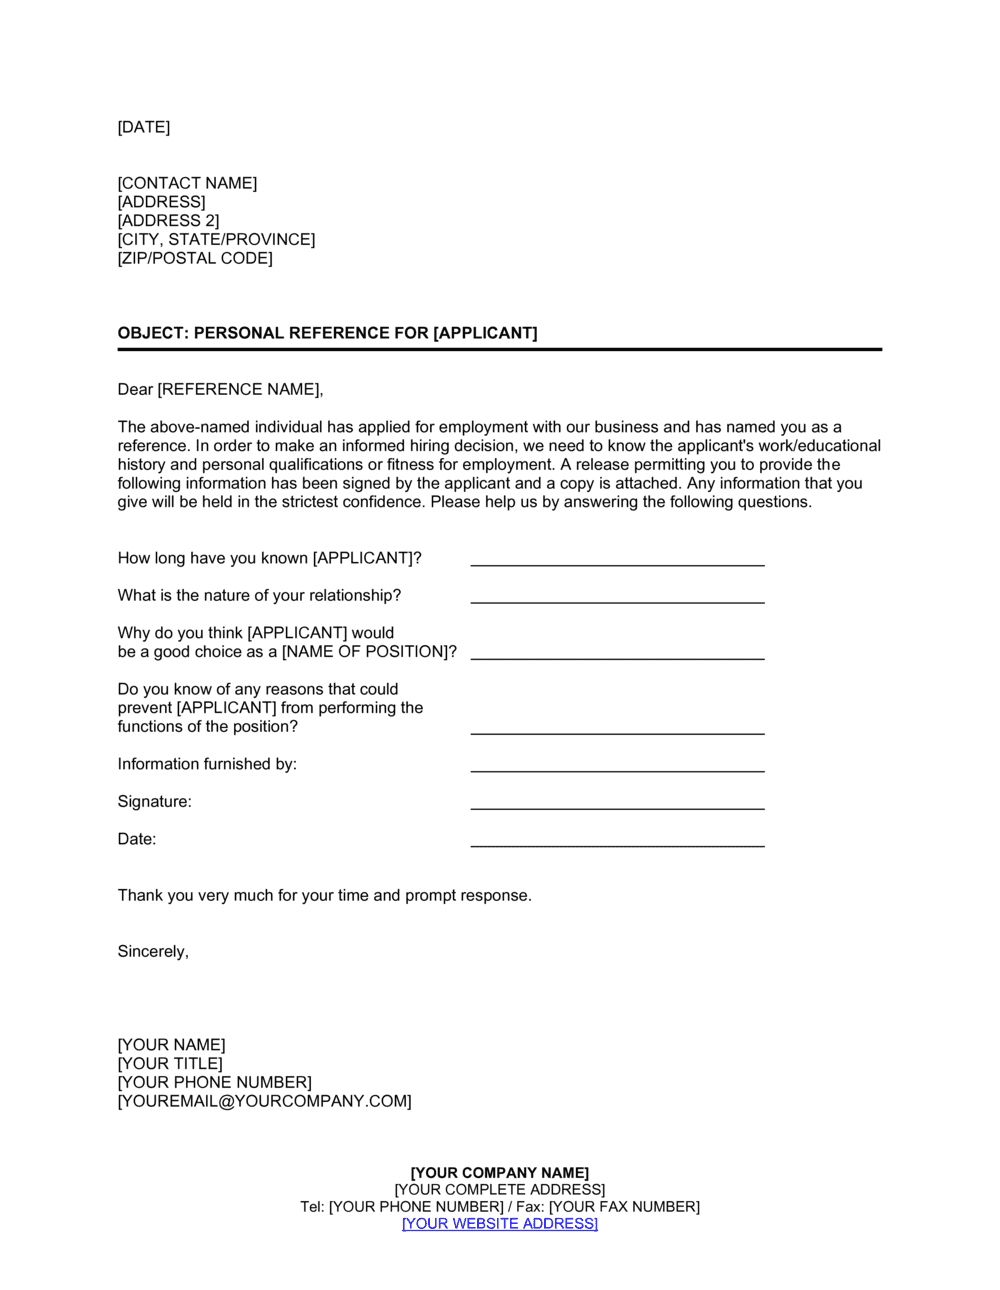 Business-in-a-Box's Personal Reference Check Letter Template